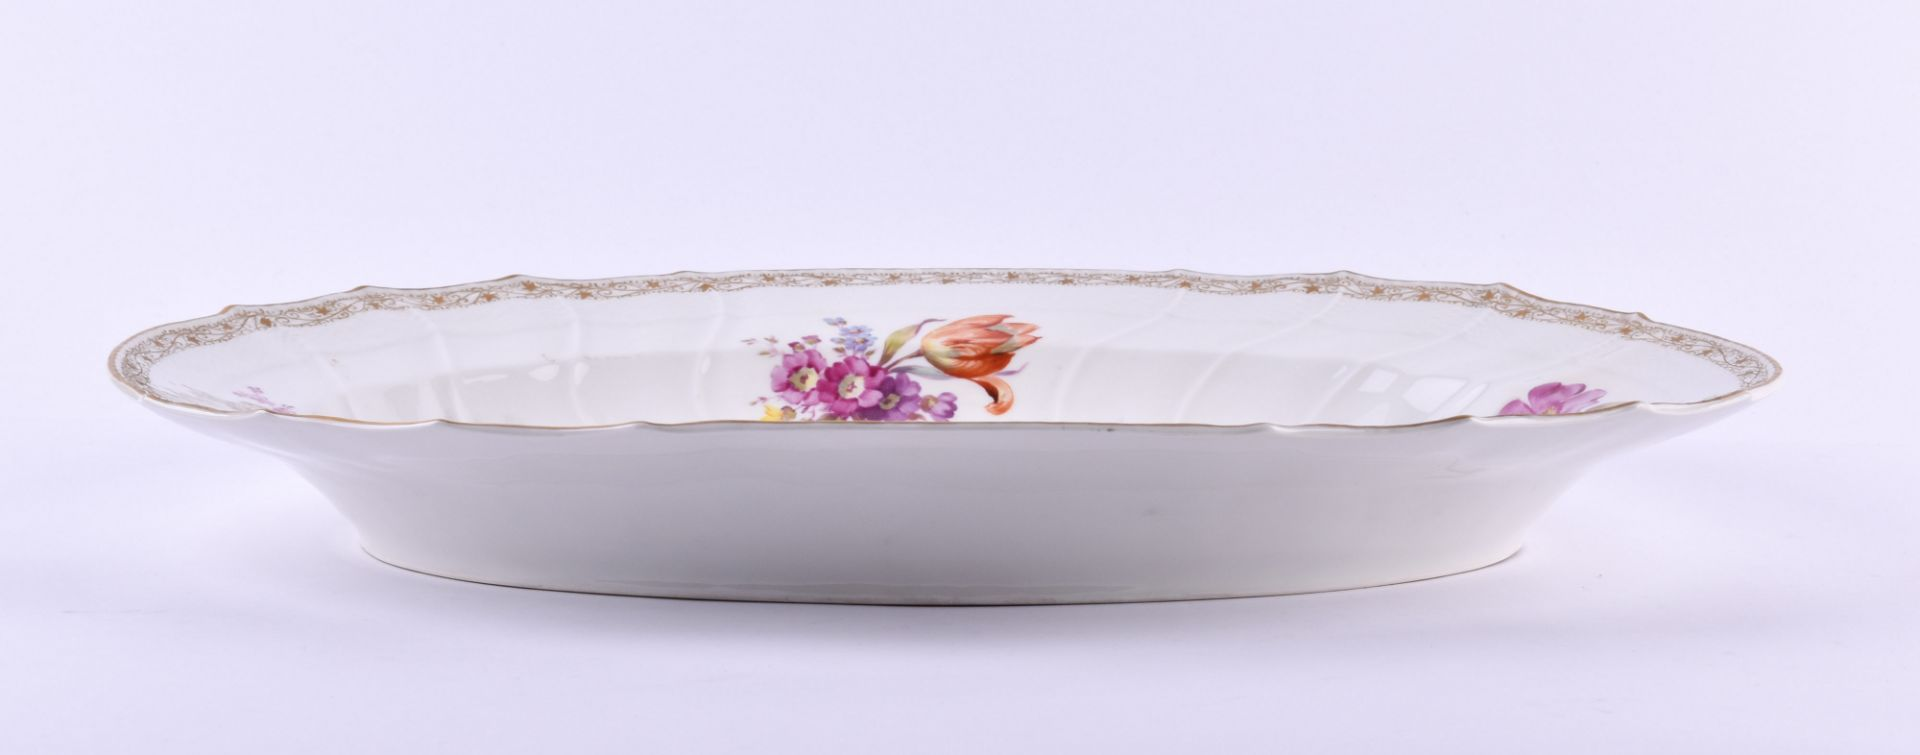 Large meat platter KPM Berlin Rocaille around 1850 - Image 3 of 6